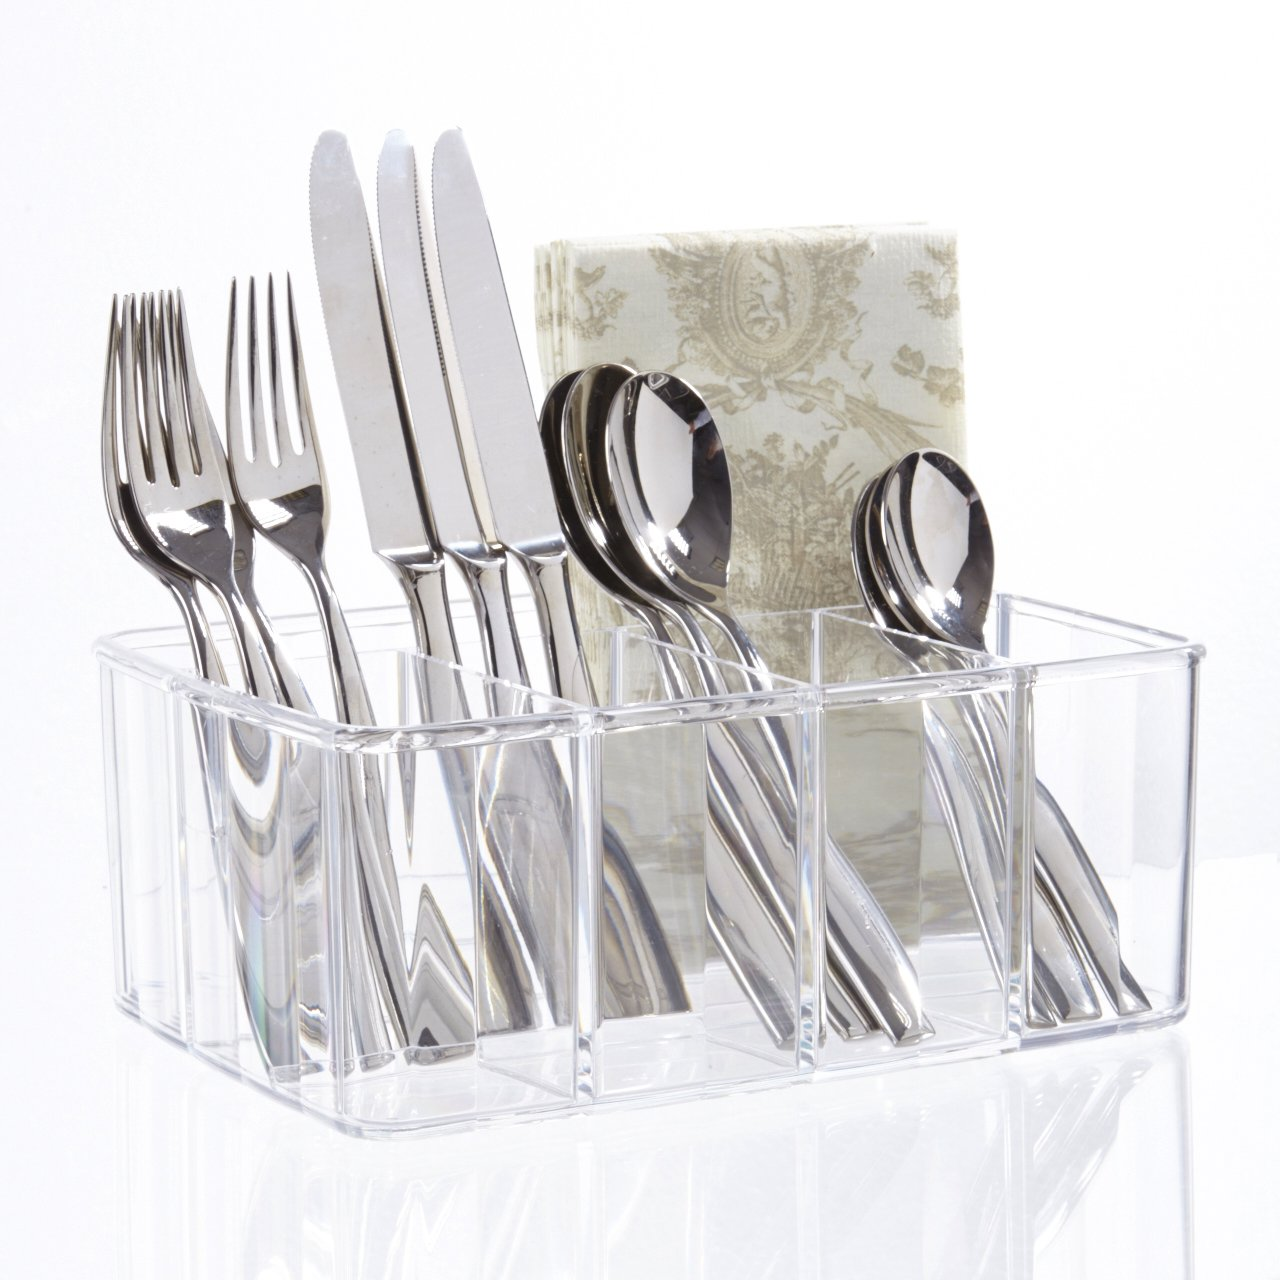 STORi Clear Plastic Utensil and Condiment Caddy | 5 Compartments by STORi